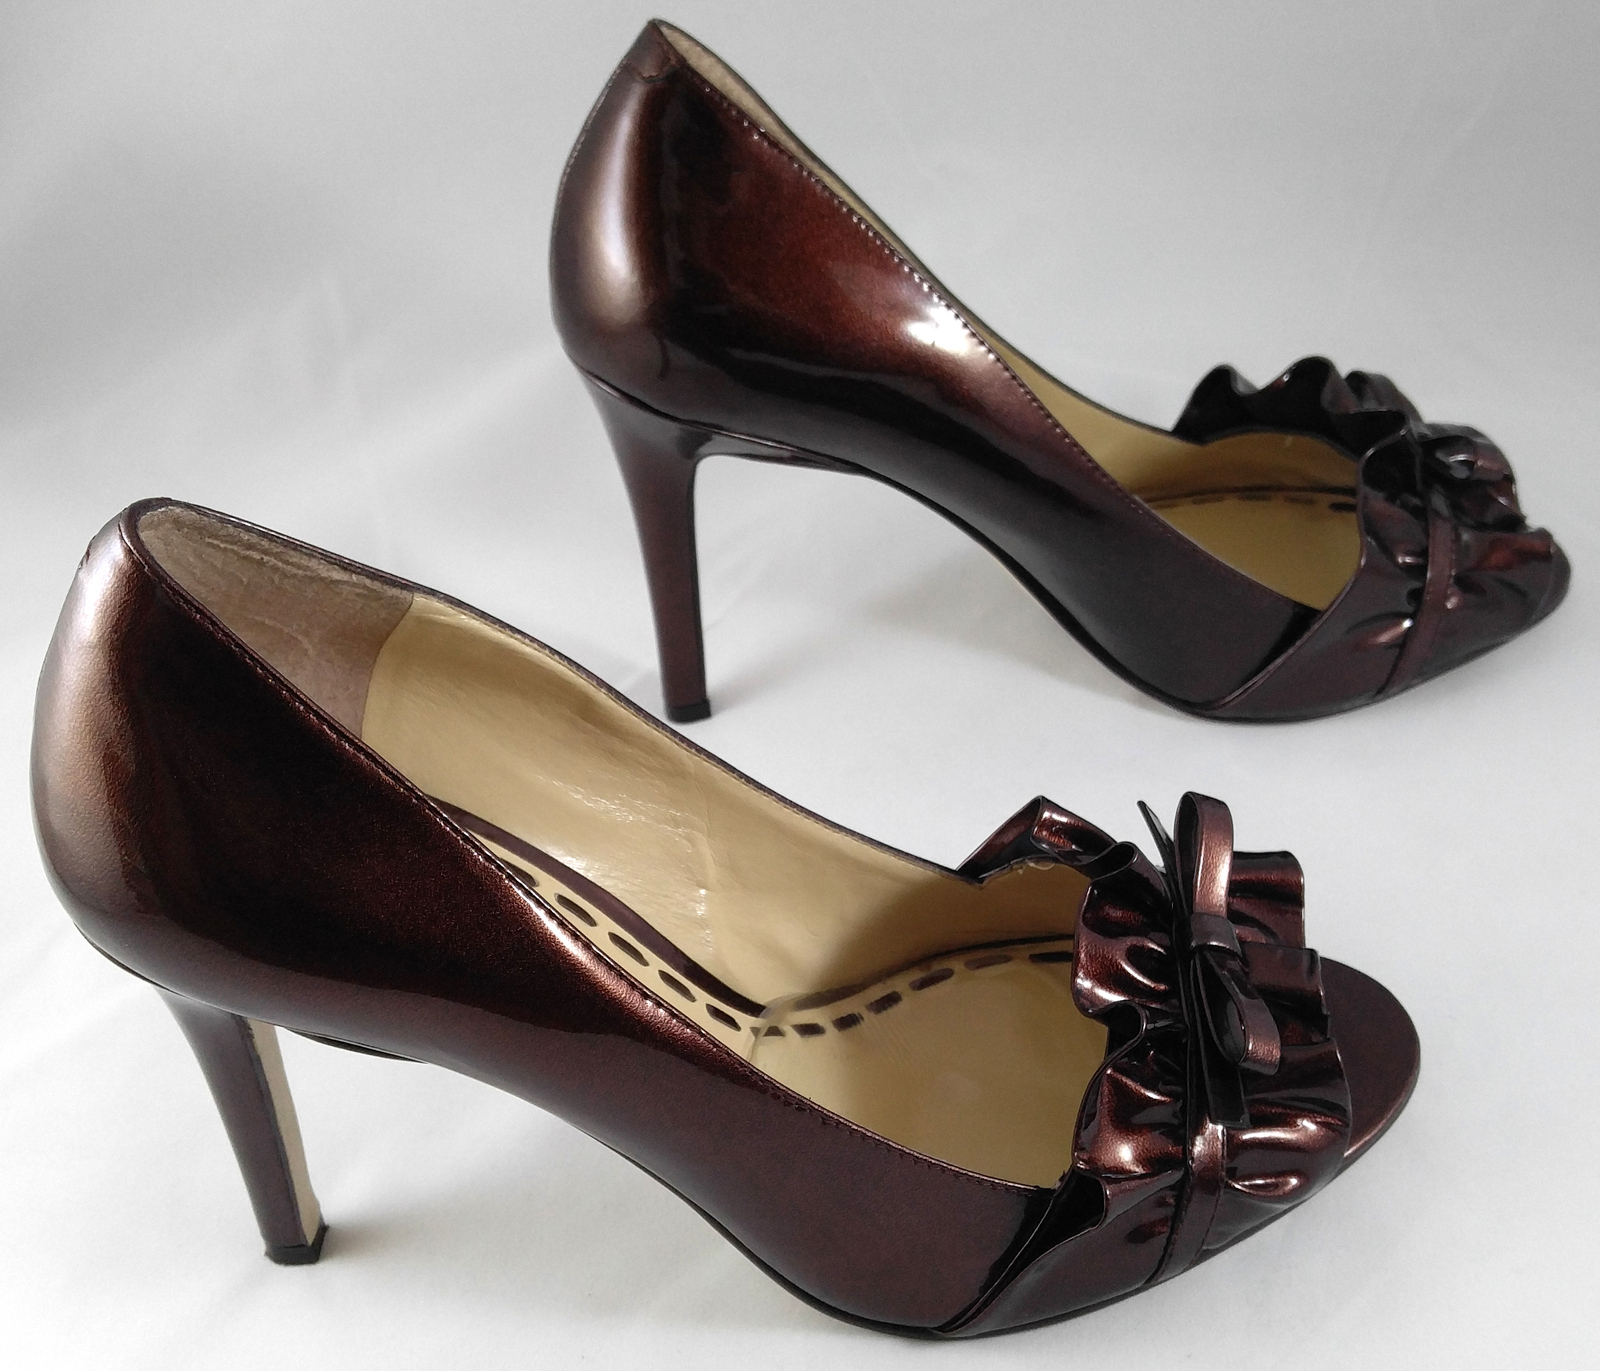 Enzo Angiolini Eamielee Patent Leather Ruffle Stiletto Heels Pumps Copper 8 ½